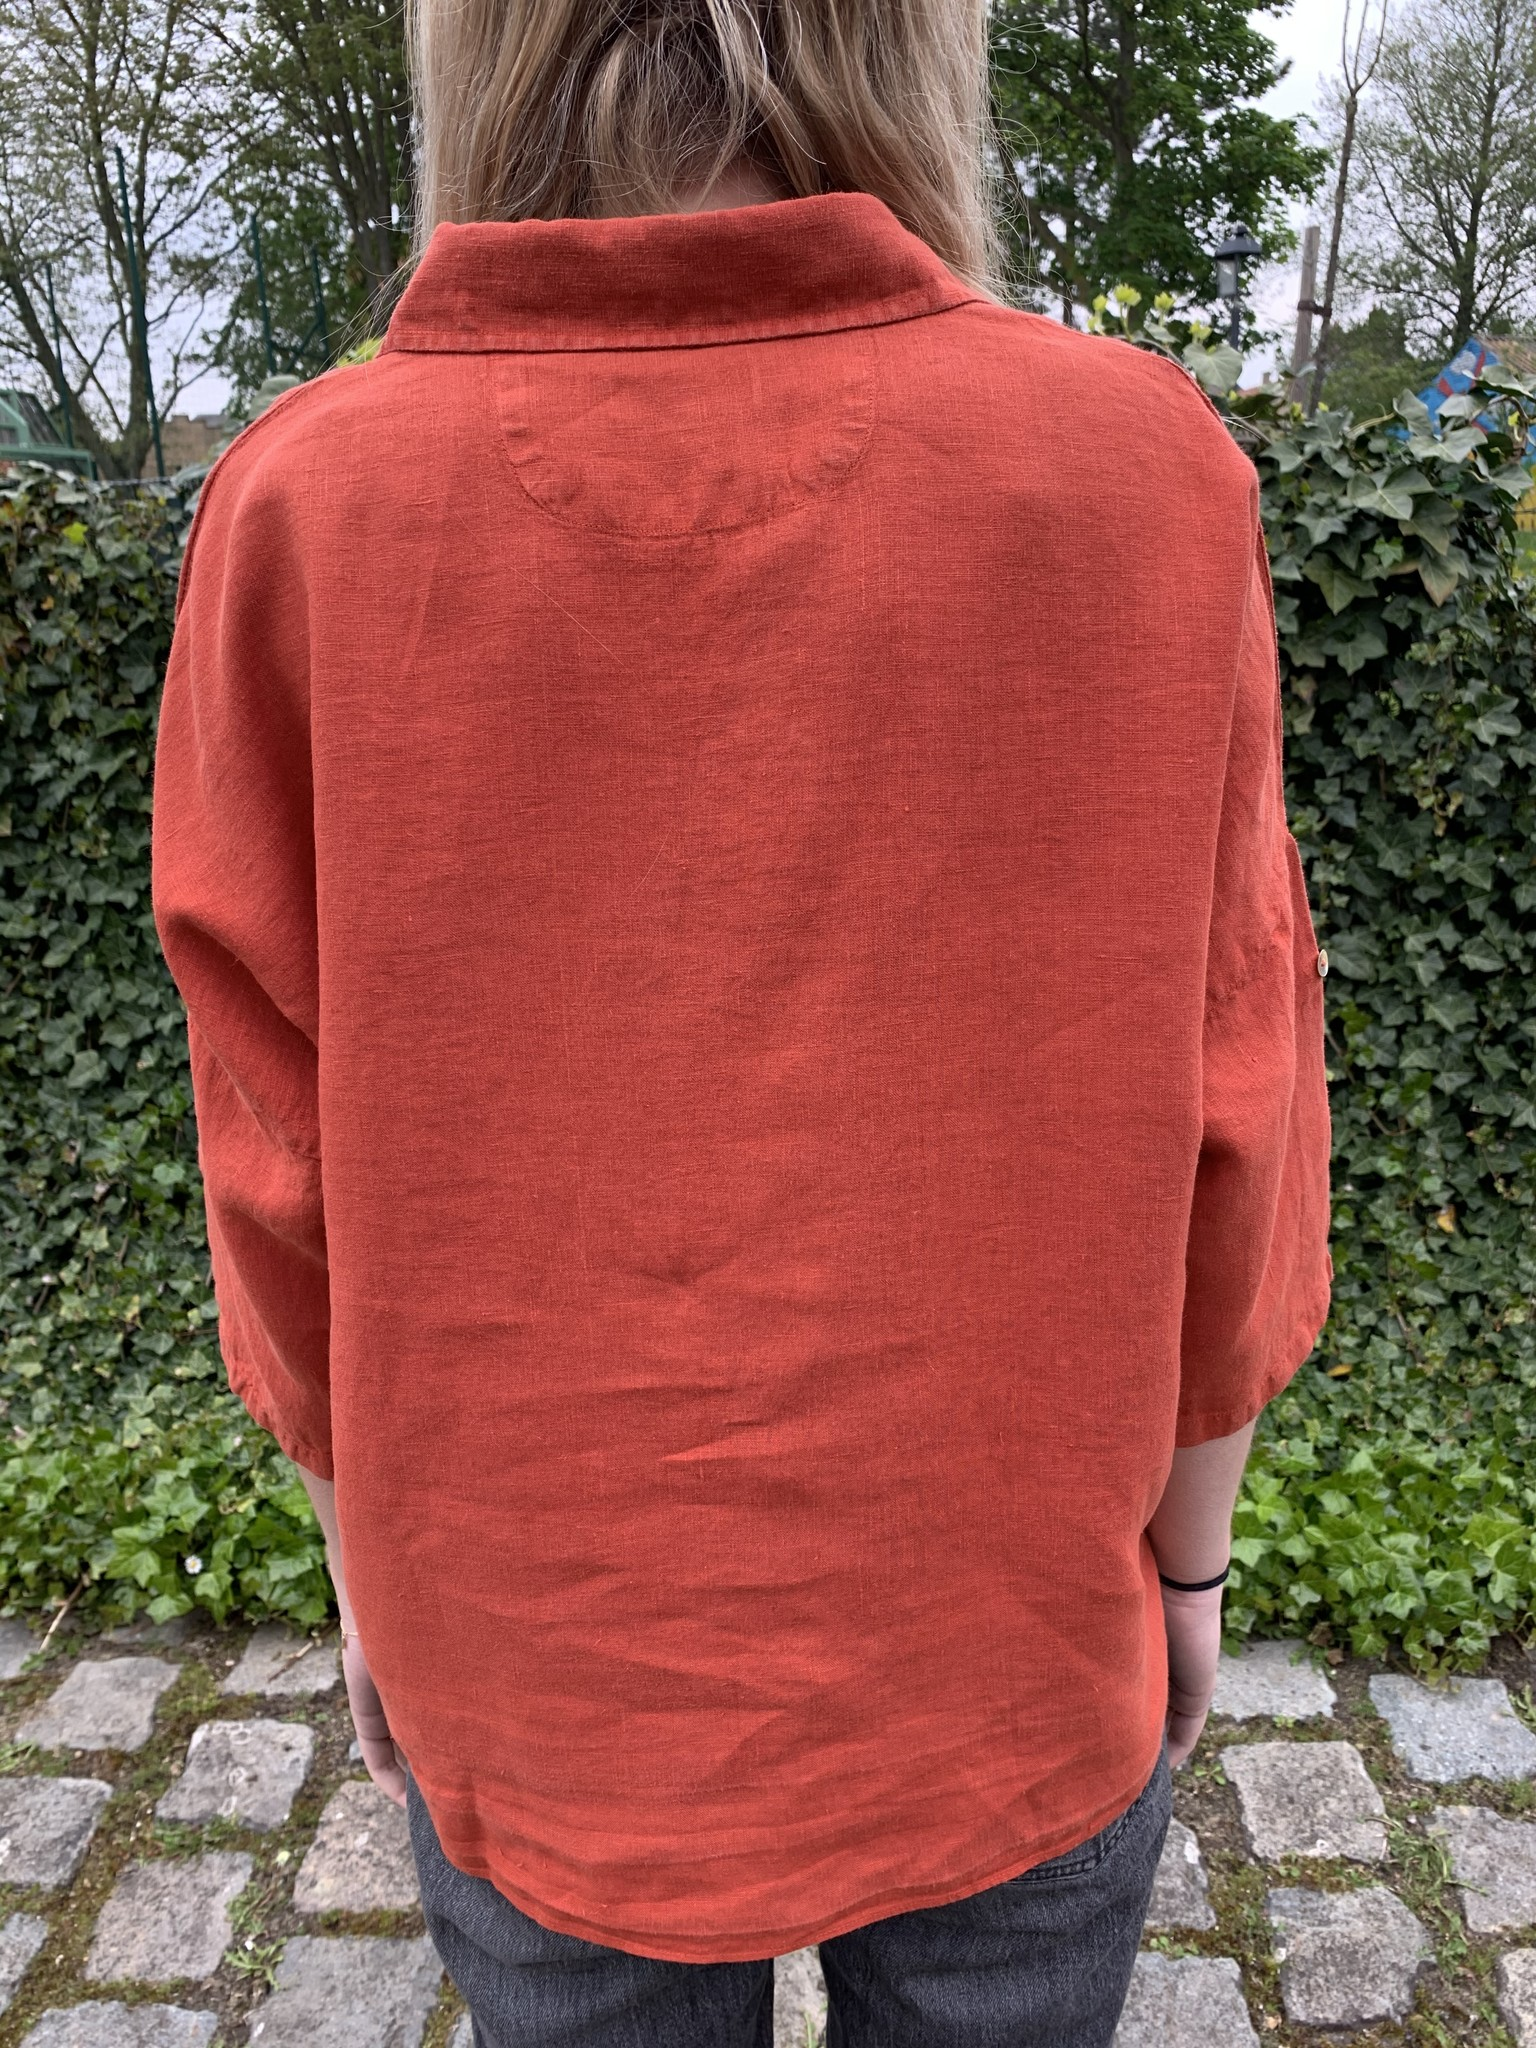 large blouse in tomette red linen